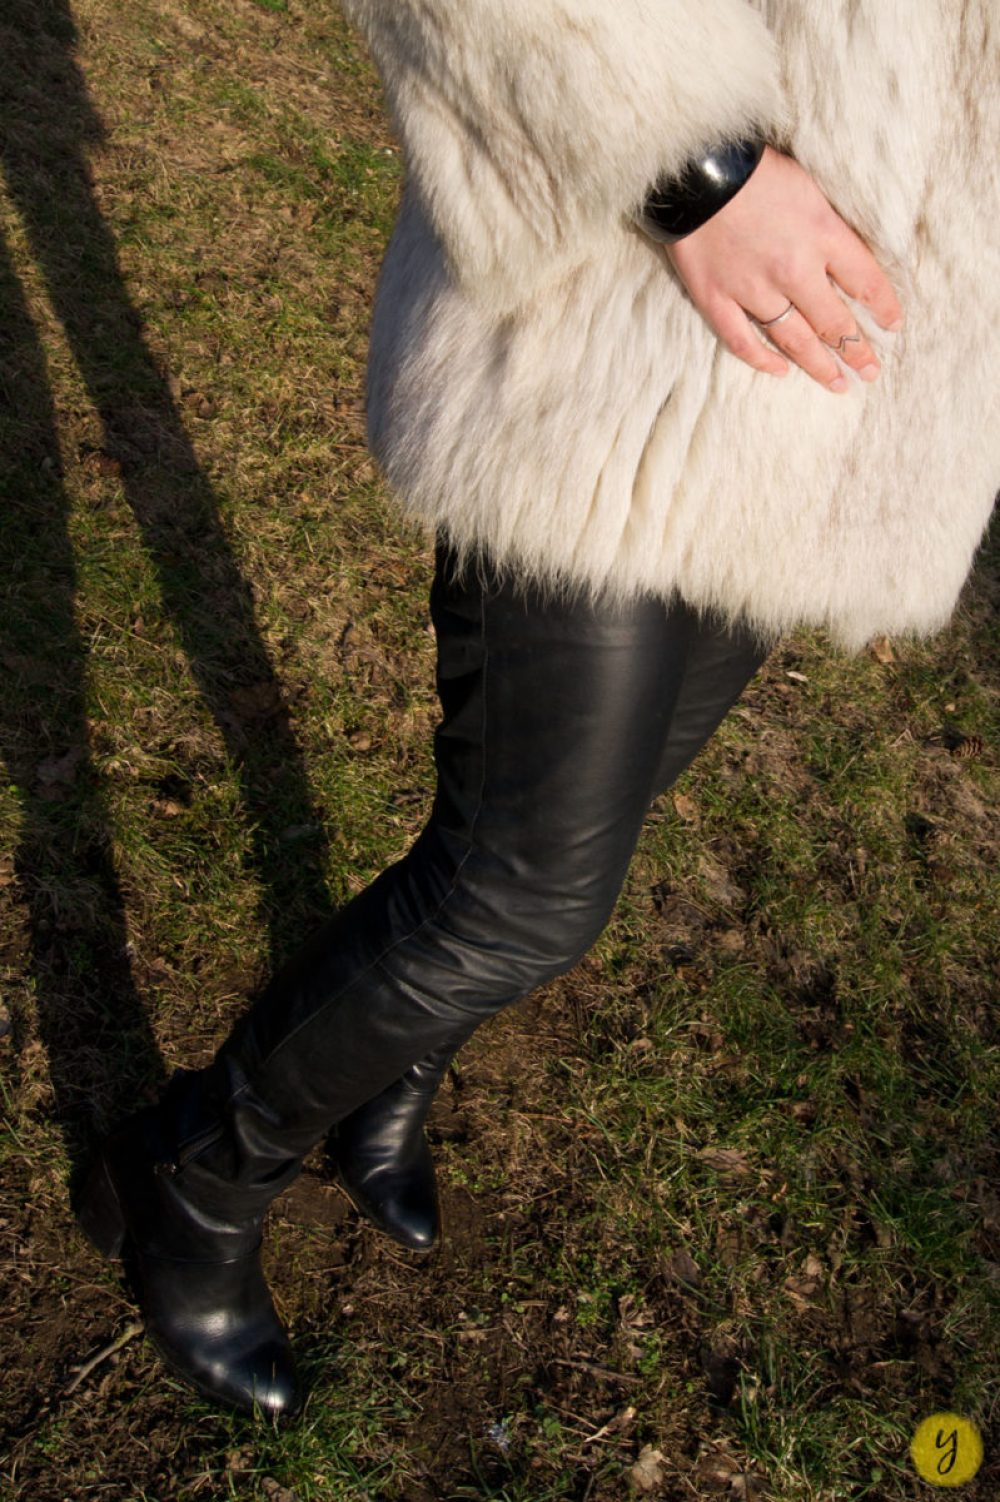 yellowgirl_Flauschig_im_Winter_Outfit_5